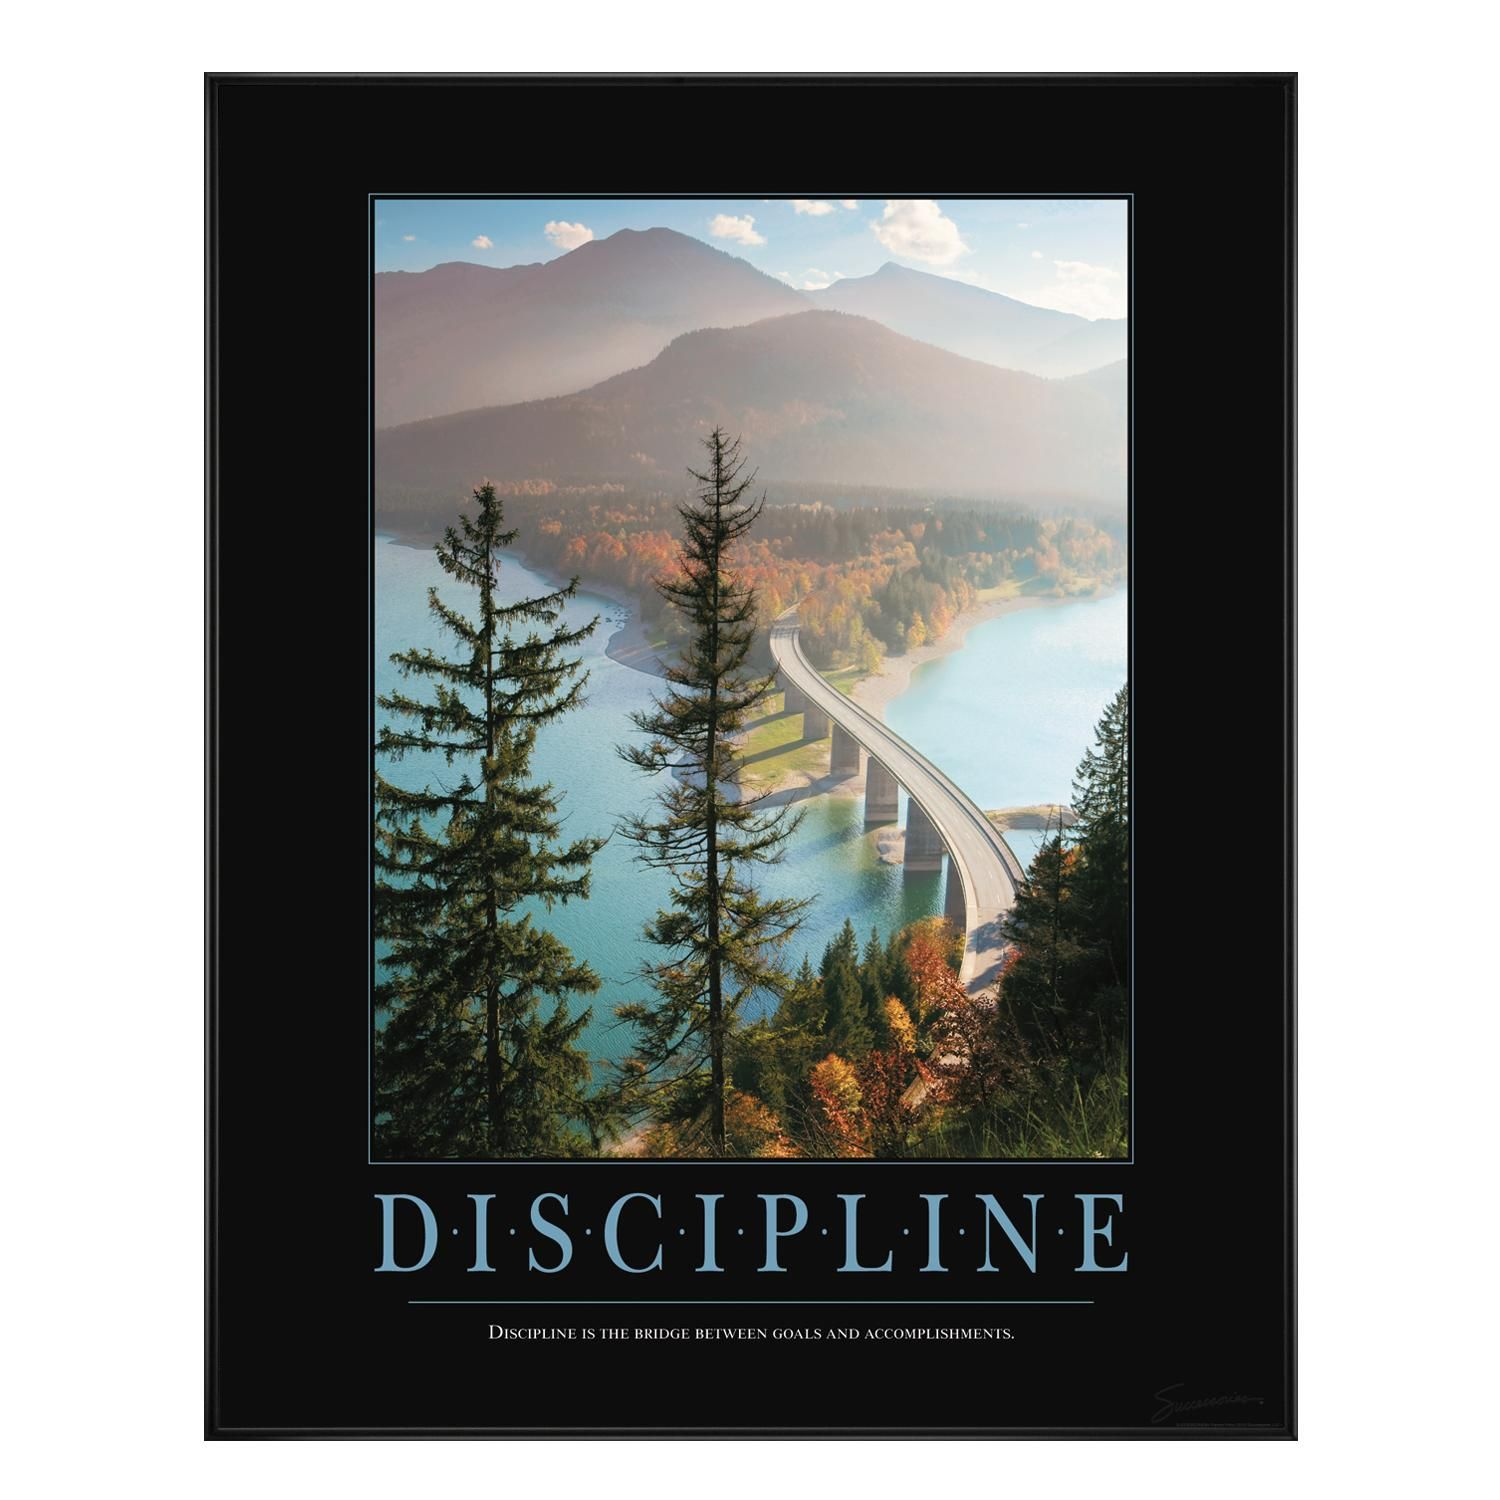 discipline is the bridge between goals and accomplishments discipline is the bridge between goals and accomplishments discipline motivation